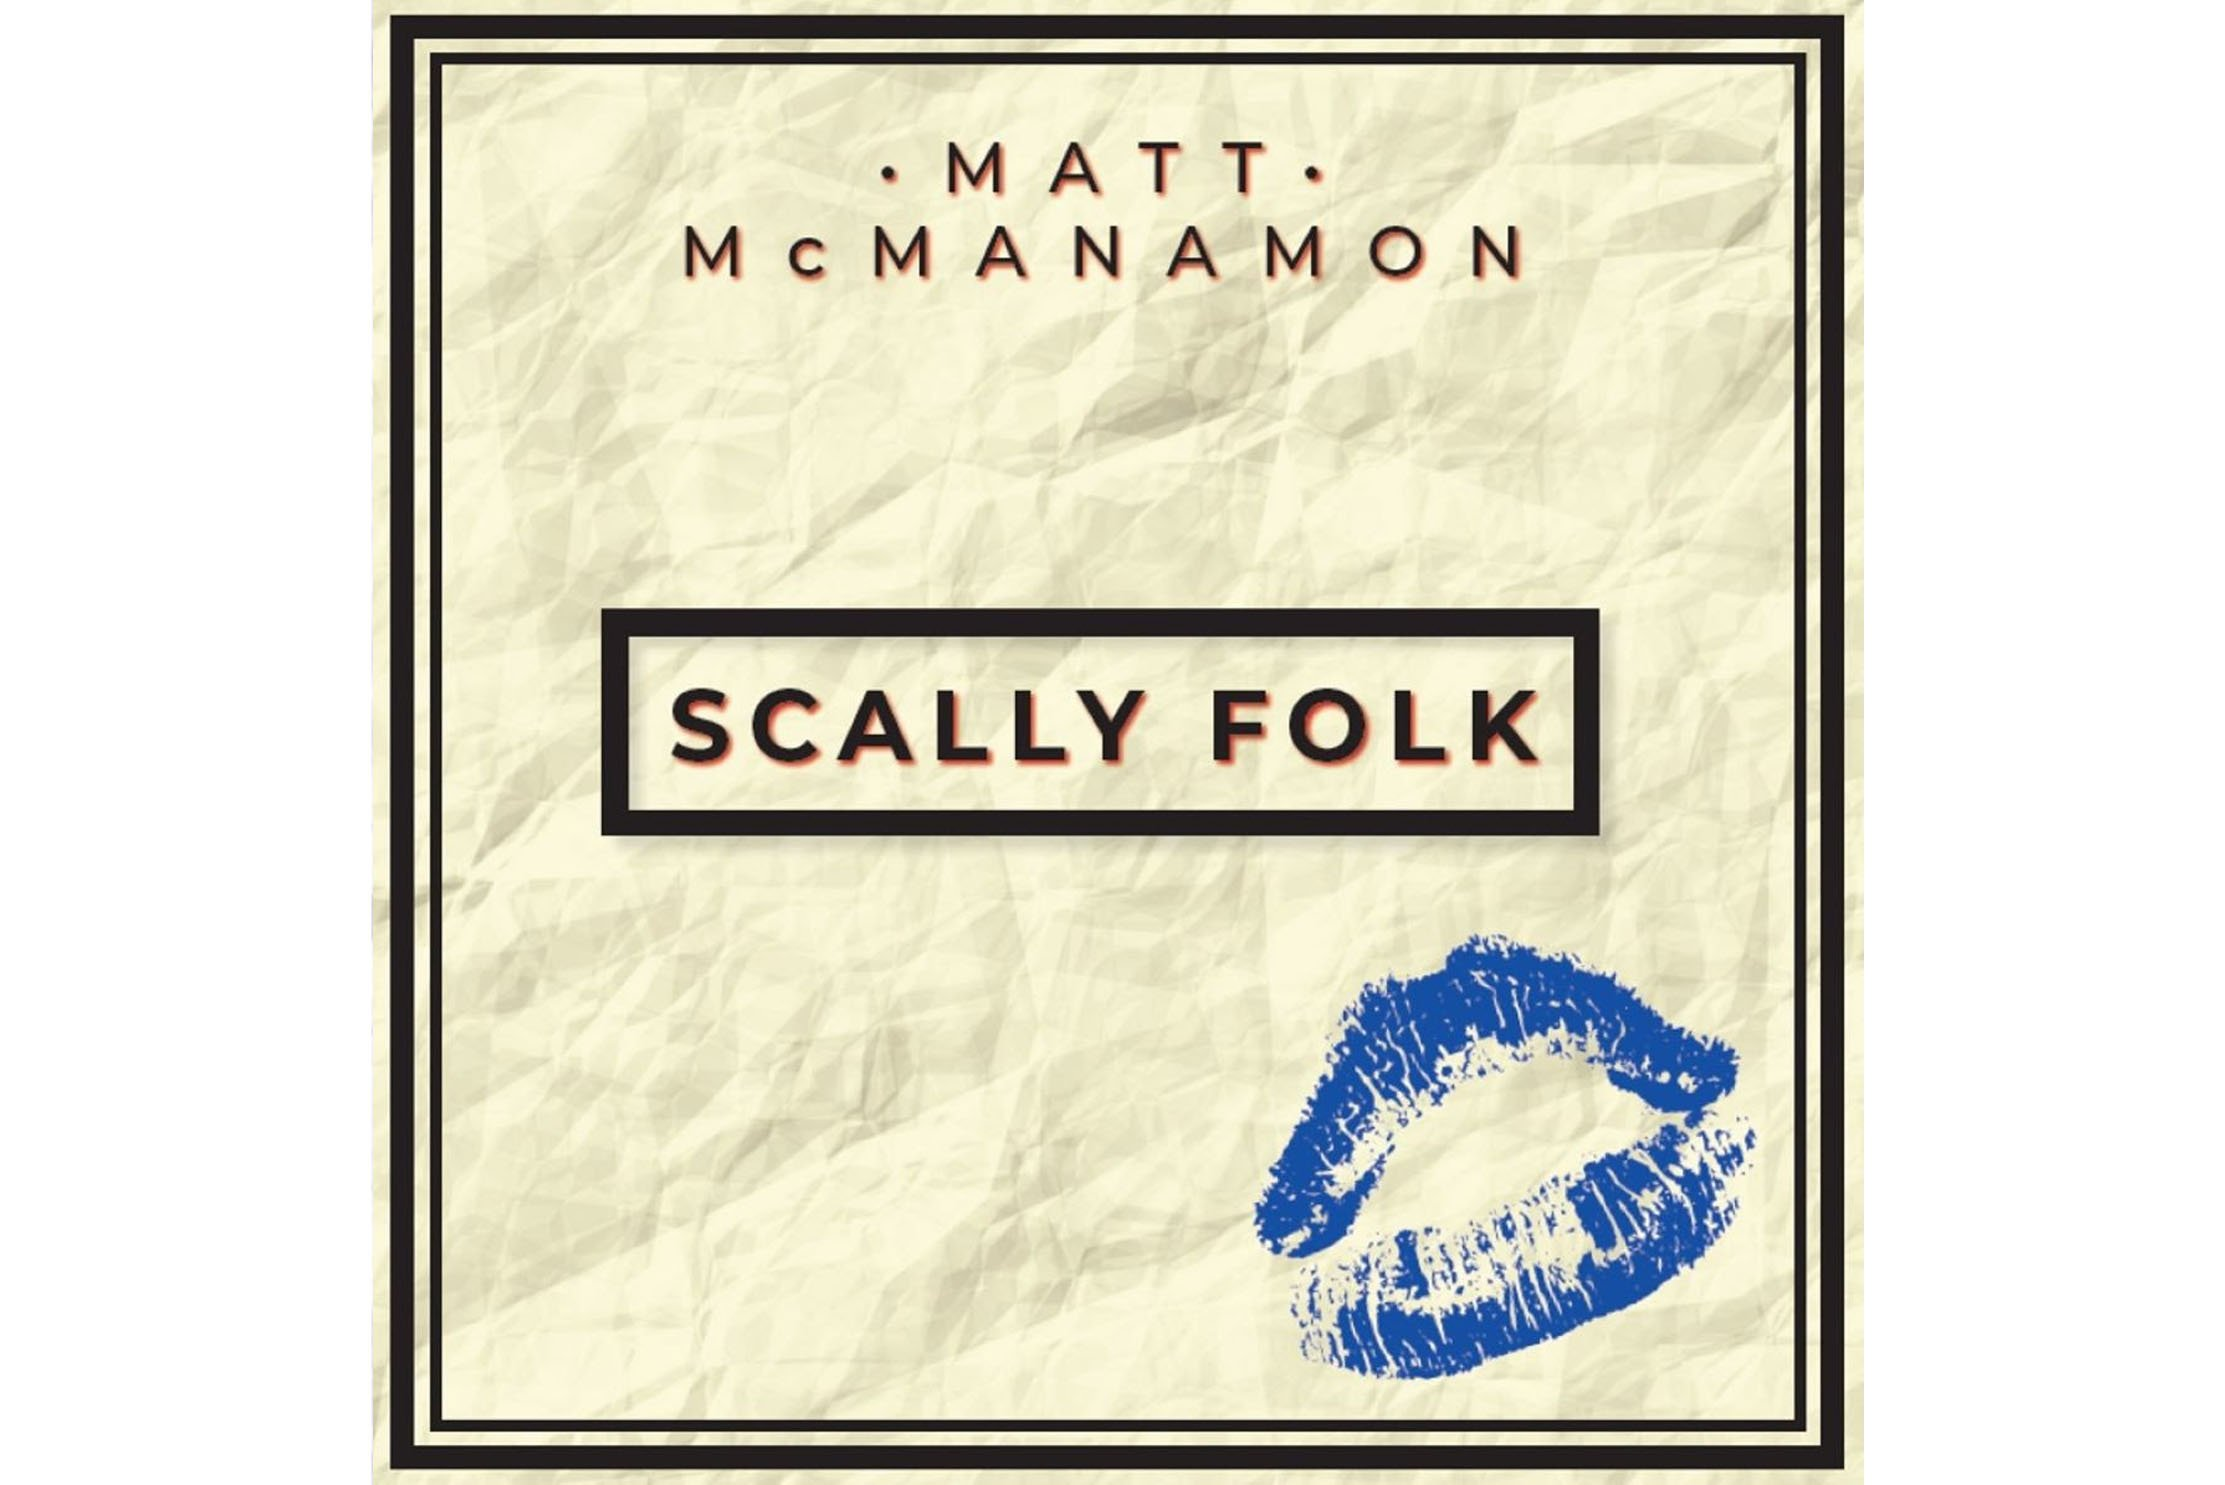 BN1 talks to former The Dead 60s frontman Matt McManamon, as he prepares to release his debut solo album, Scally Folk, is released on Fri 28 May 2021